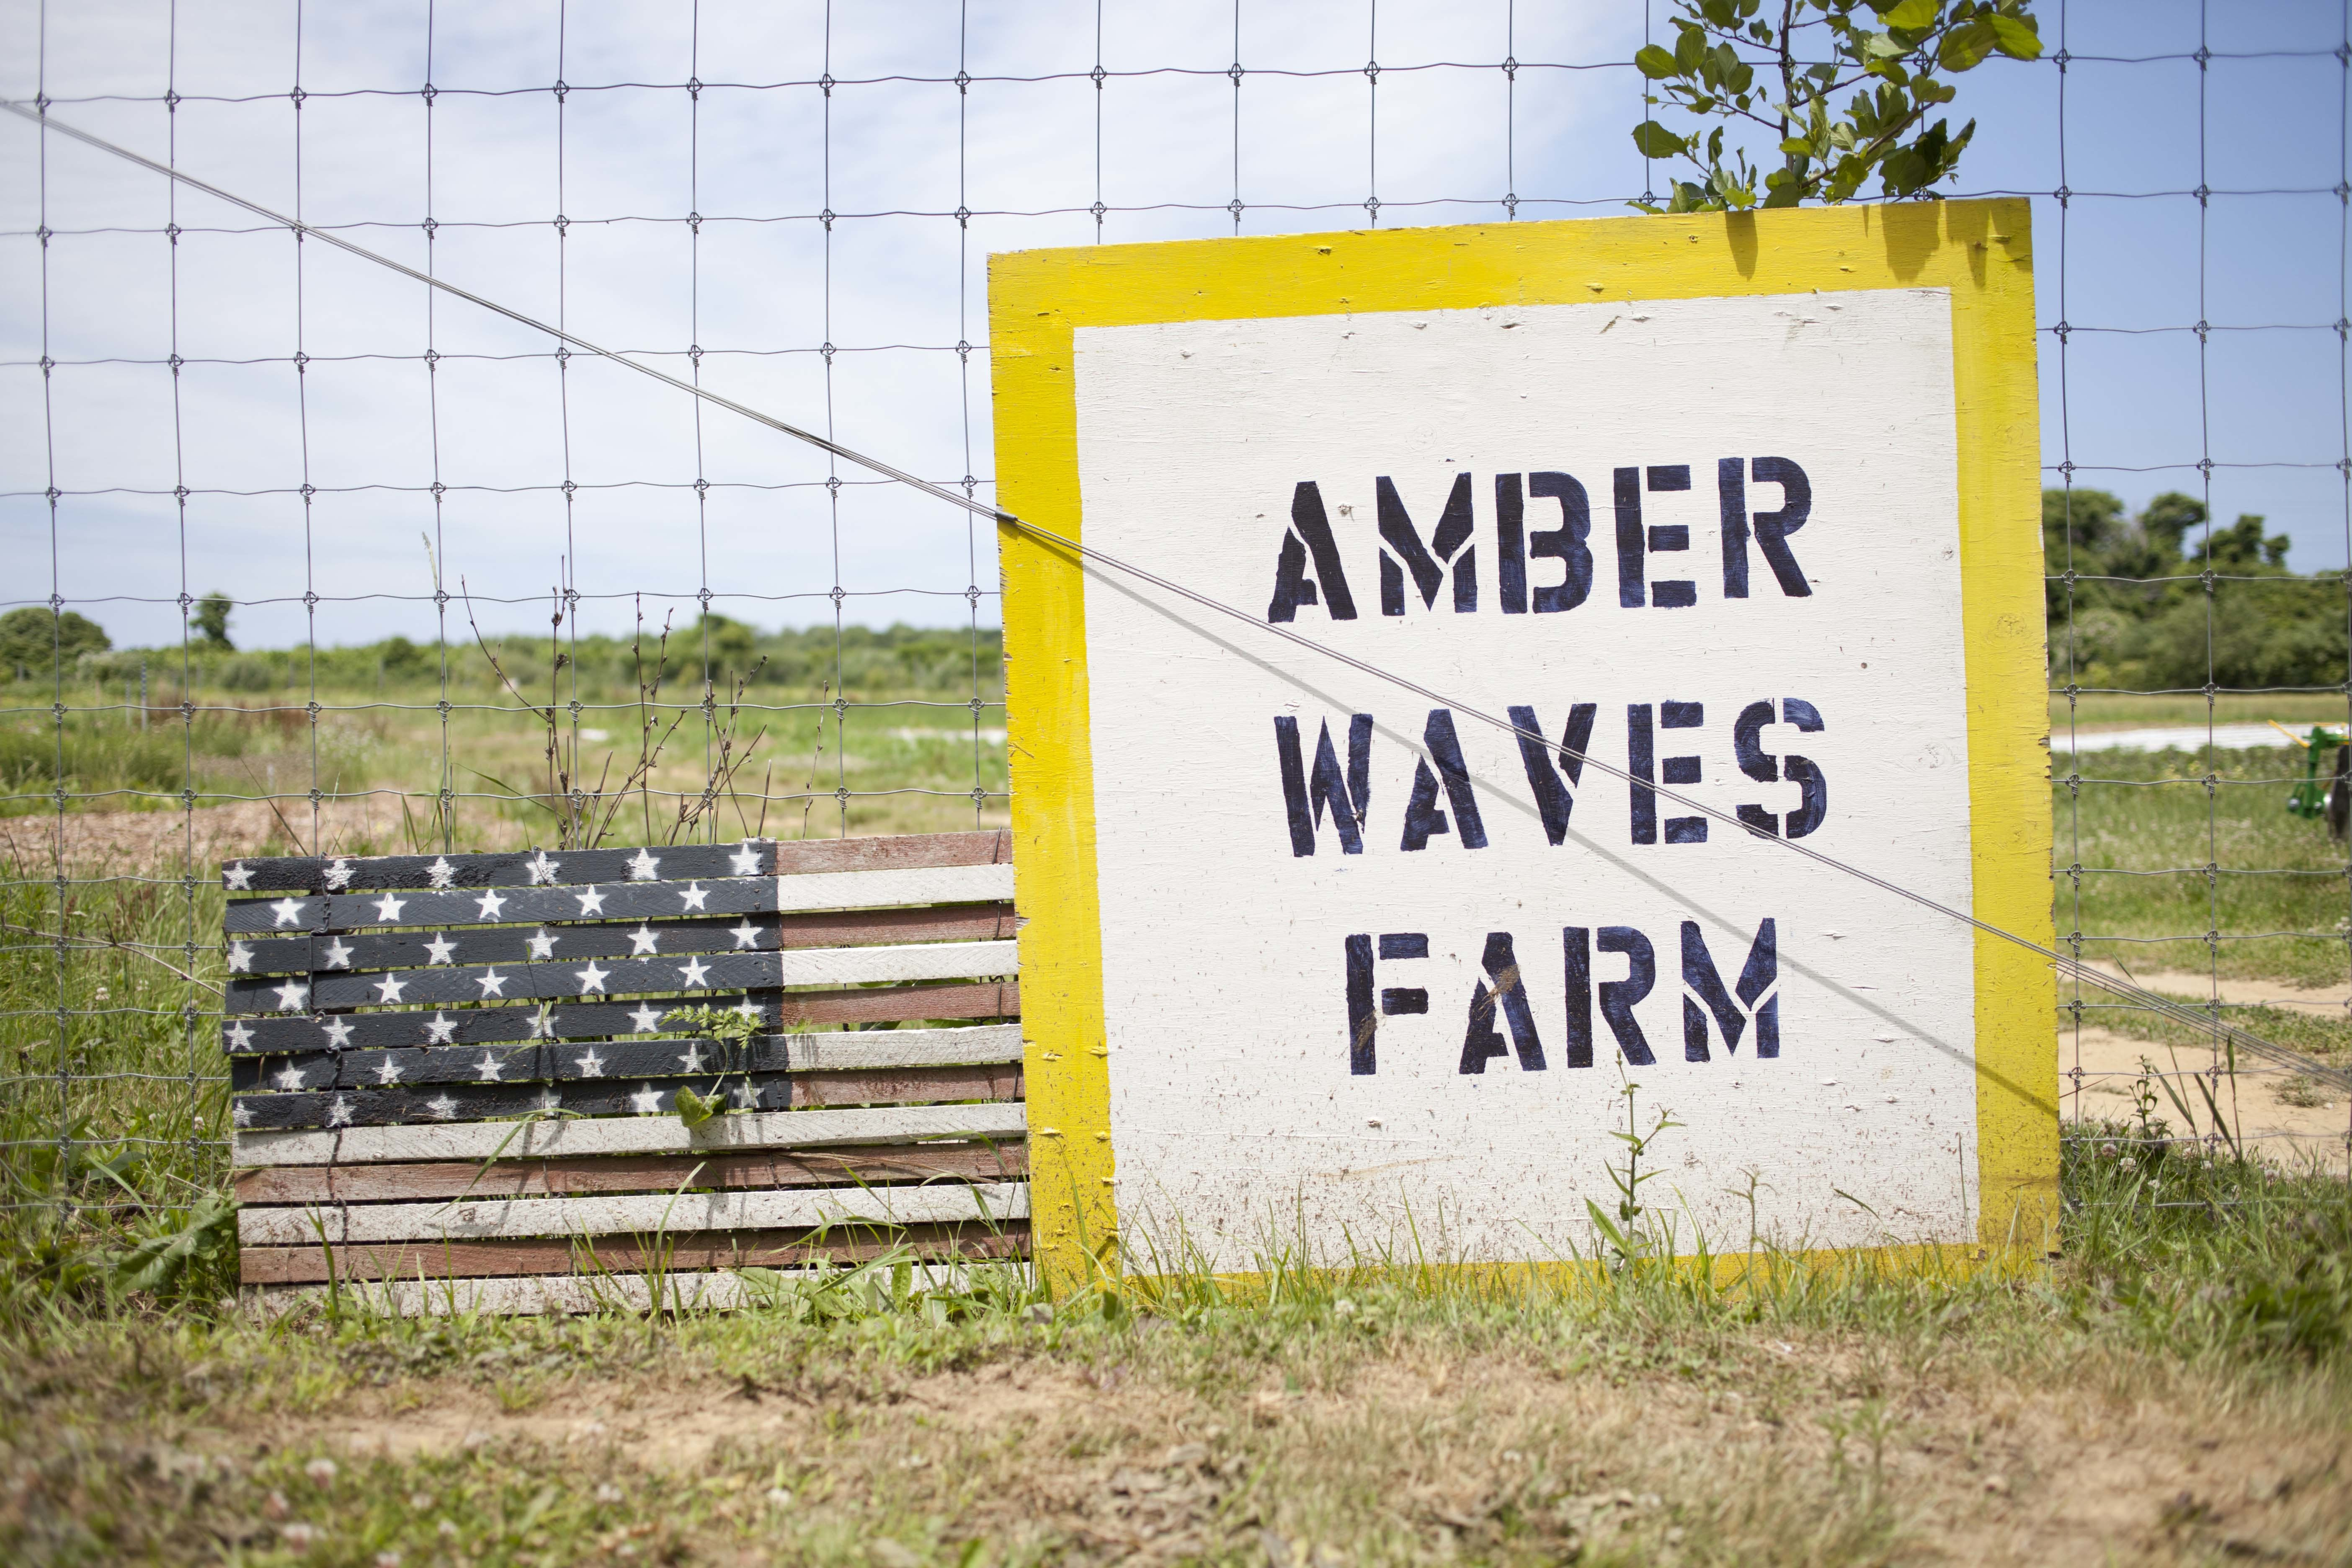 Amber Waves farm sign